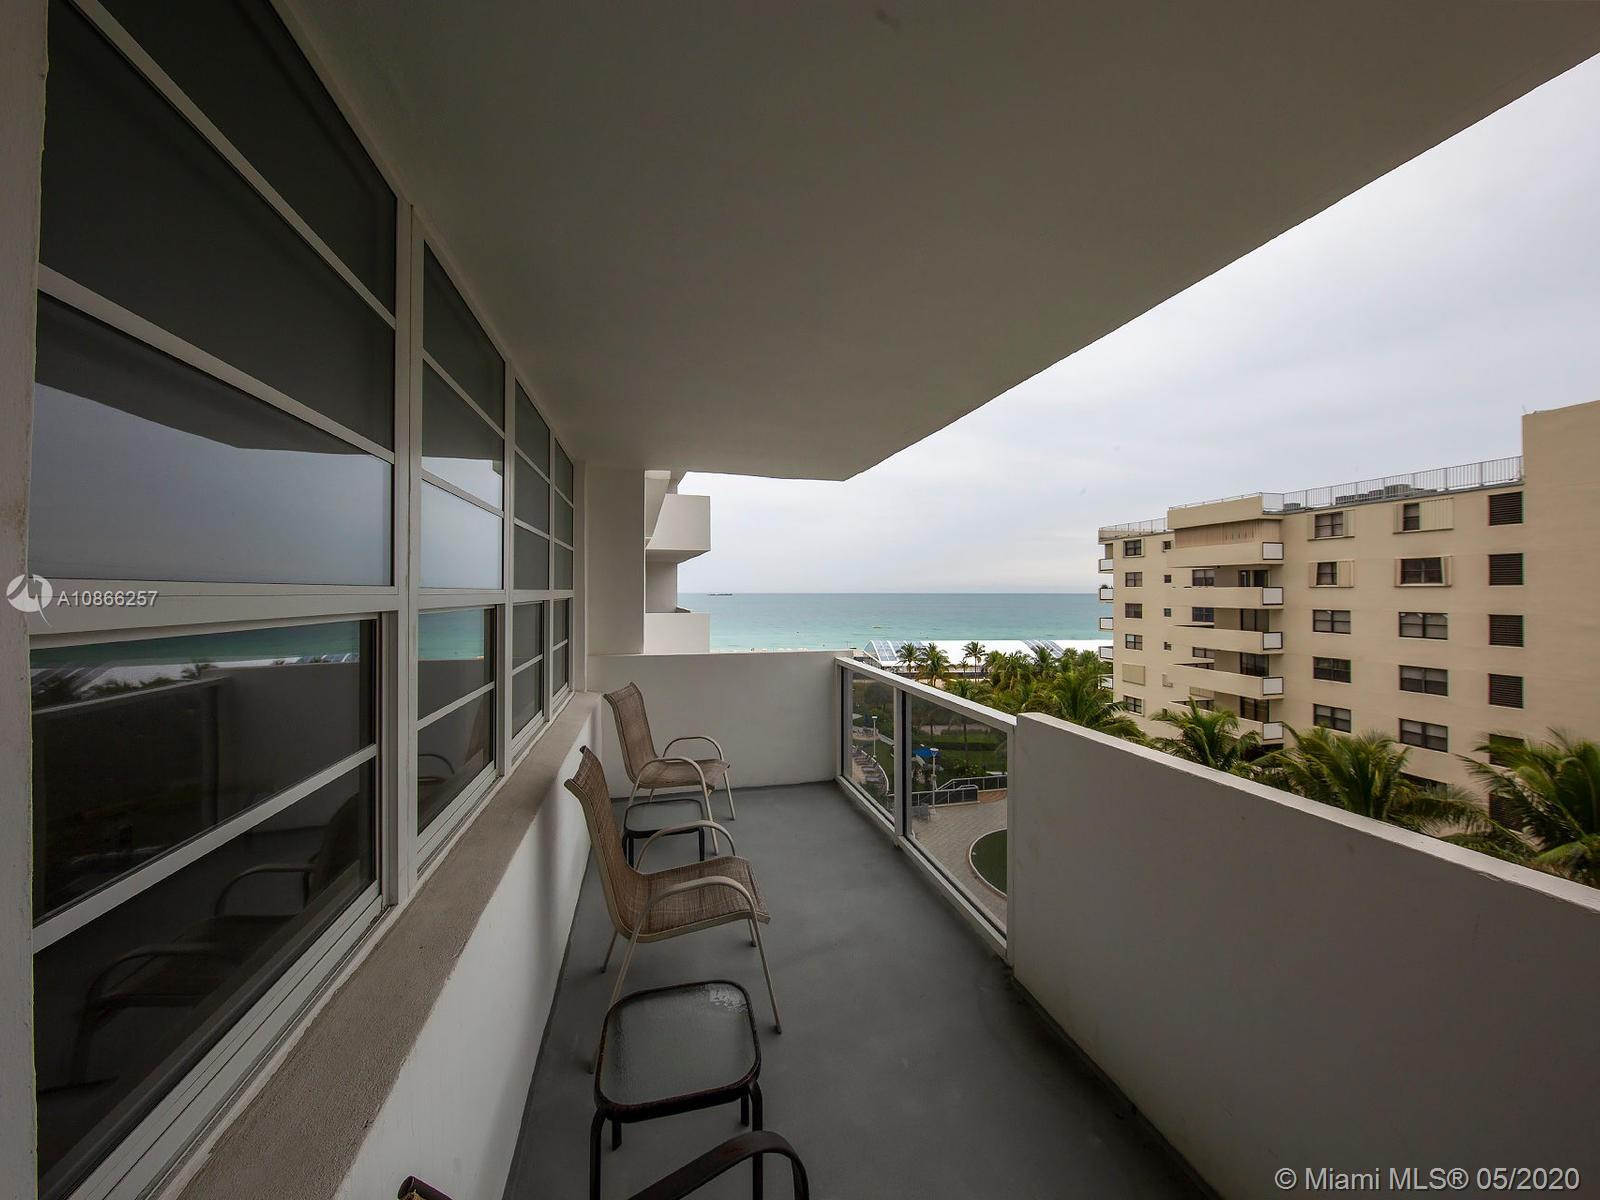 Decoplage South Beach For Sale| Unit #830